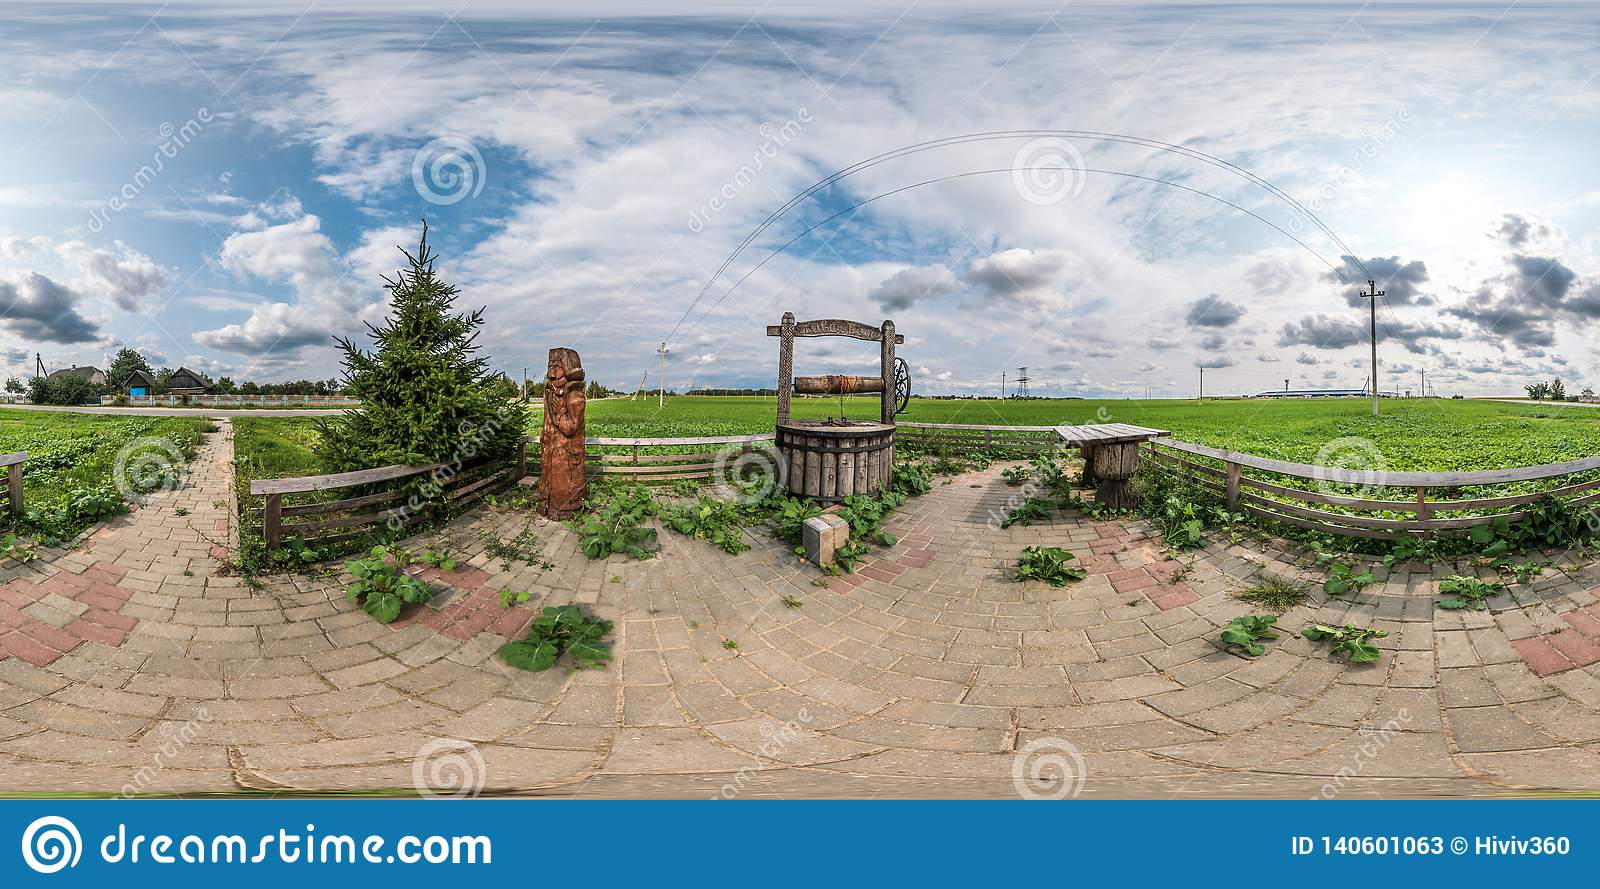 Full seamless spherical panorama 360 by 180 angle view a place of rest with a well sump and wooden table in equirectangular